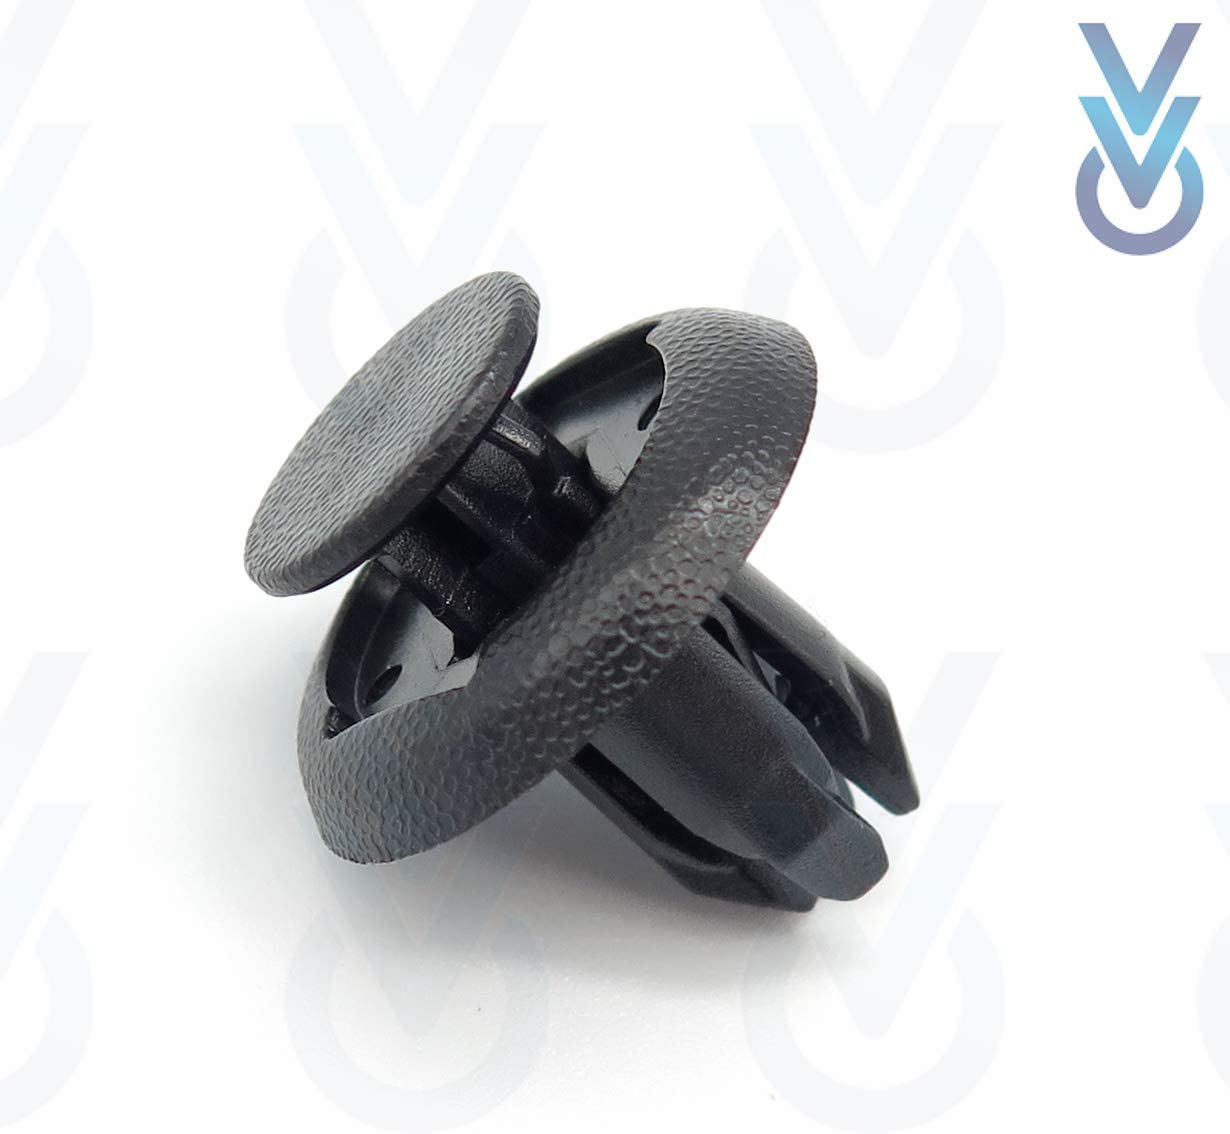 VVO Fasteners Front Wheel Arch Lining /& Mudguard Clips Pack of 10 Black